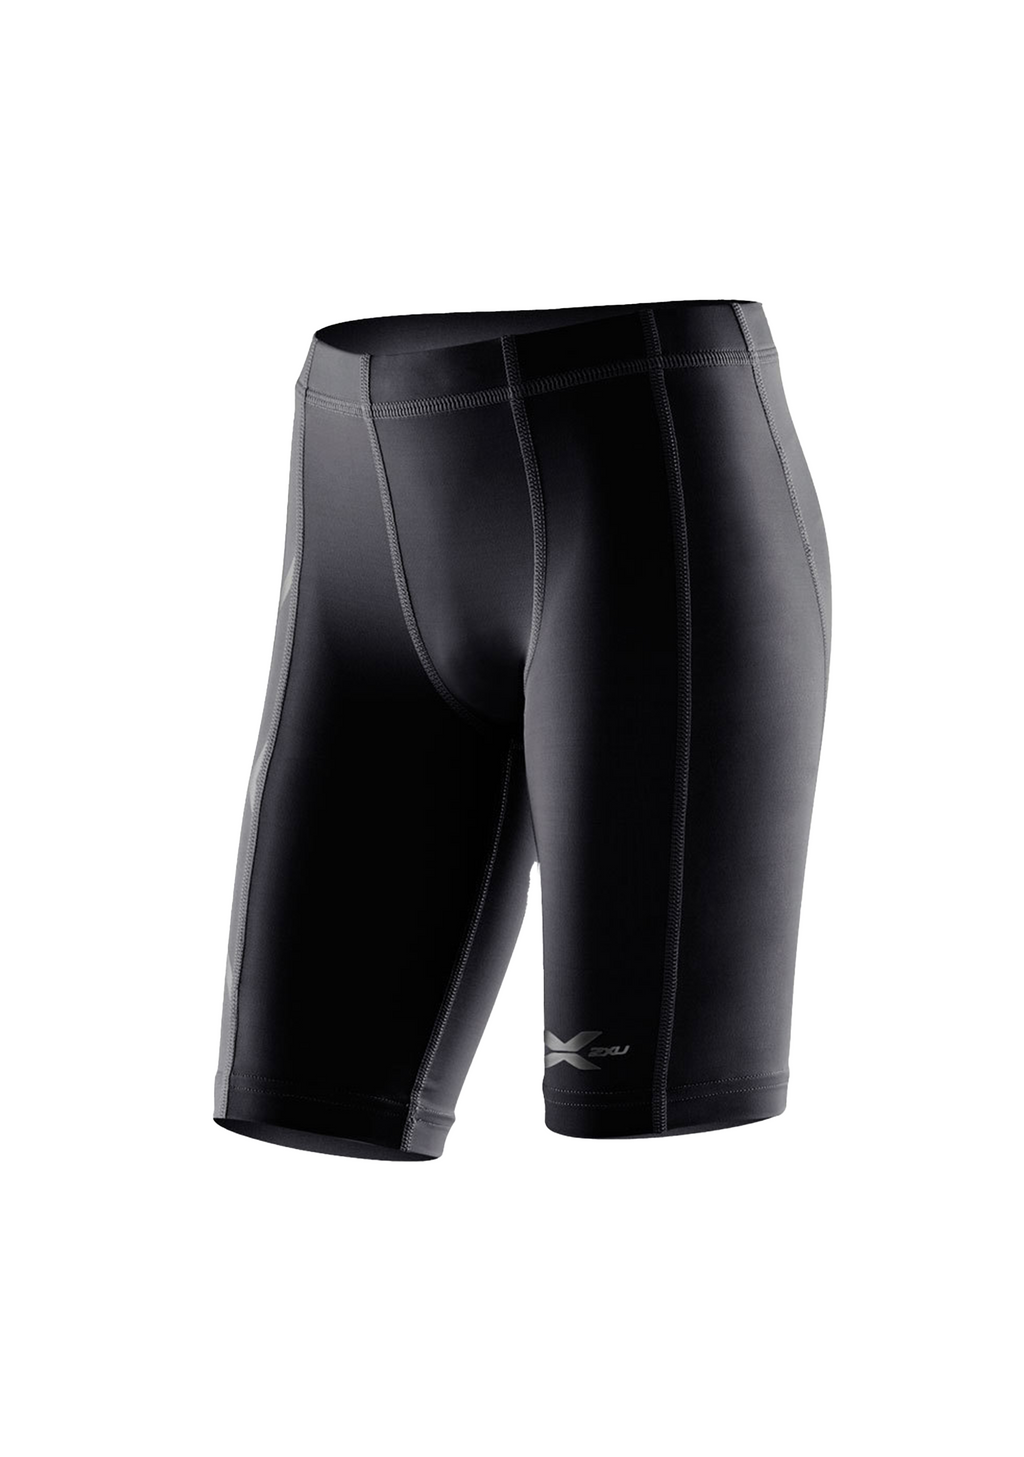 2XU YOUTH COMPRESSION SHORTS <br> CA2548B